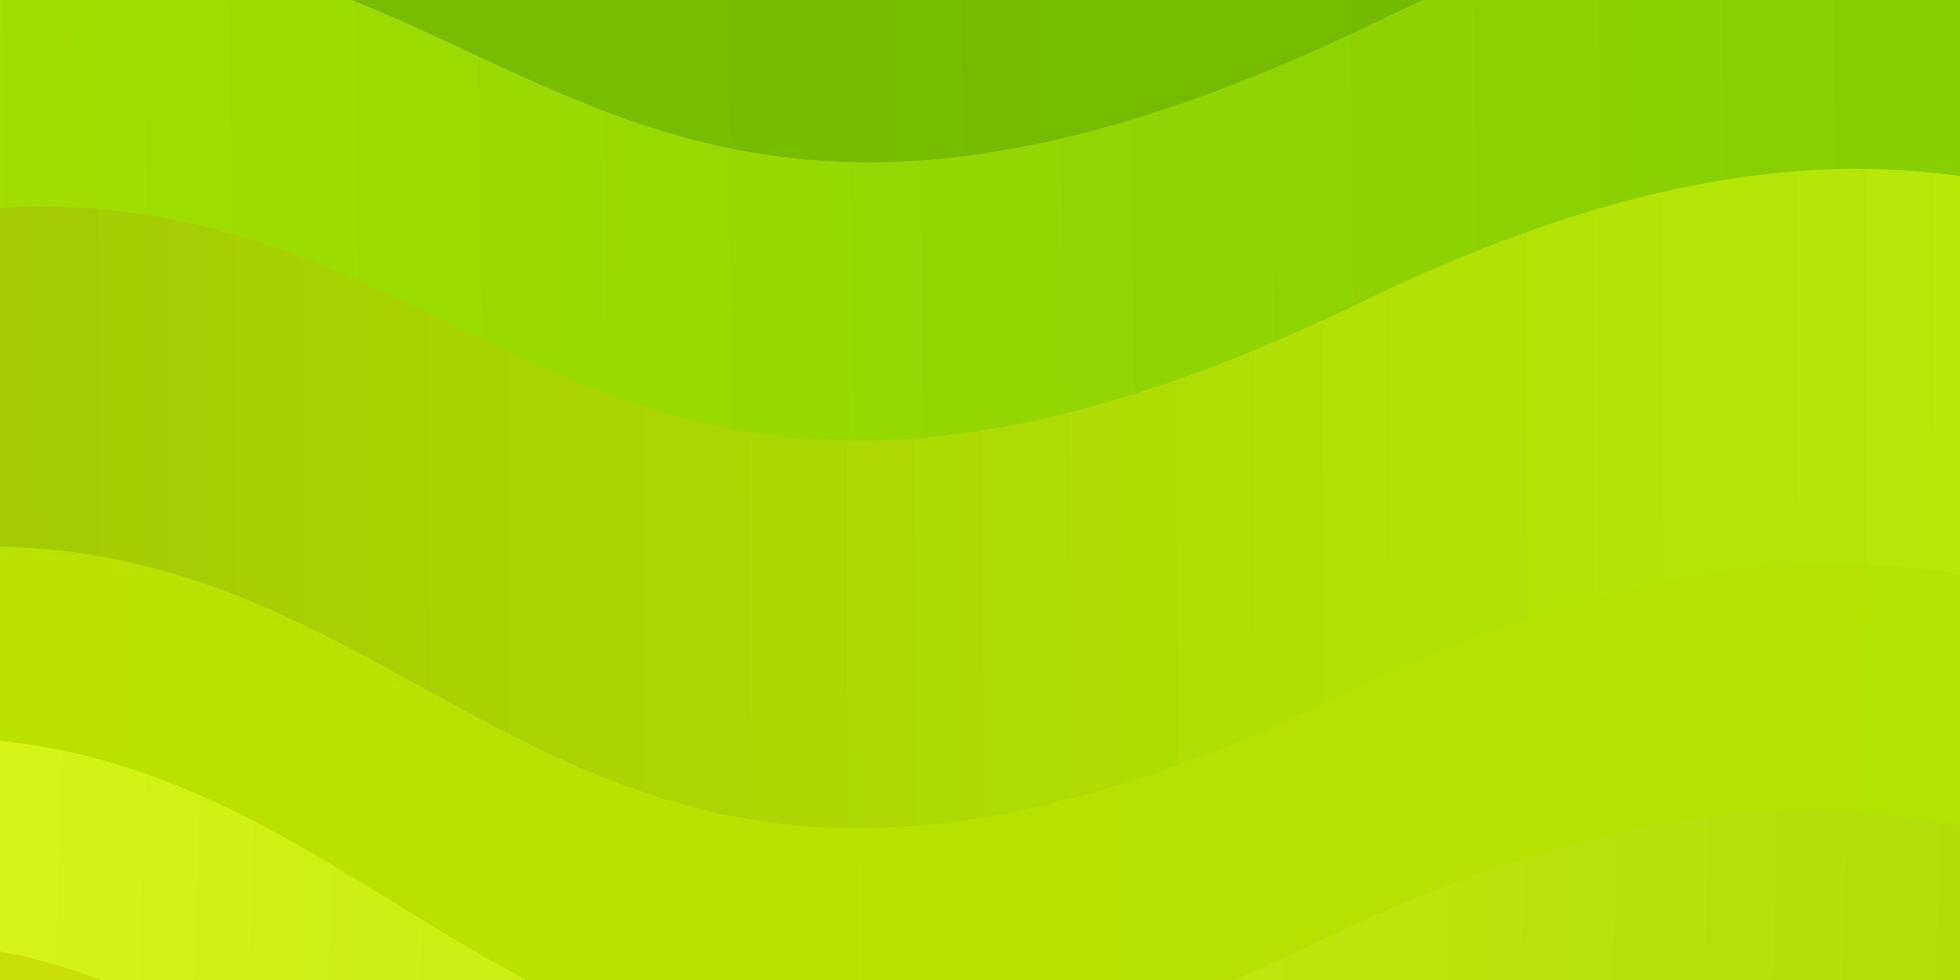 Green and yellow texture with curves. vector